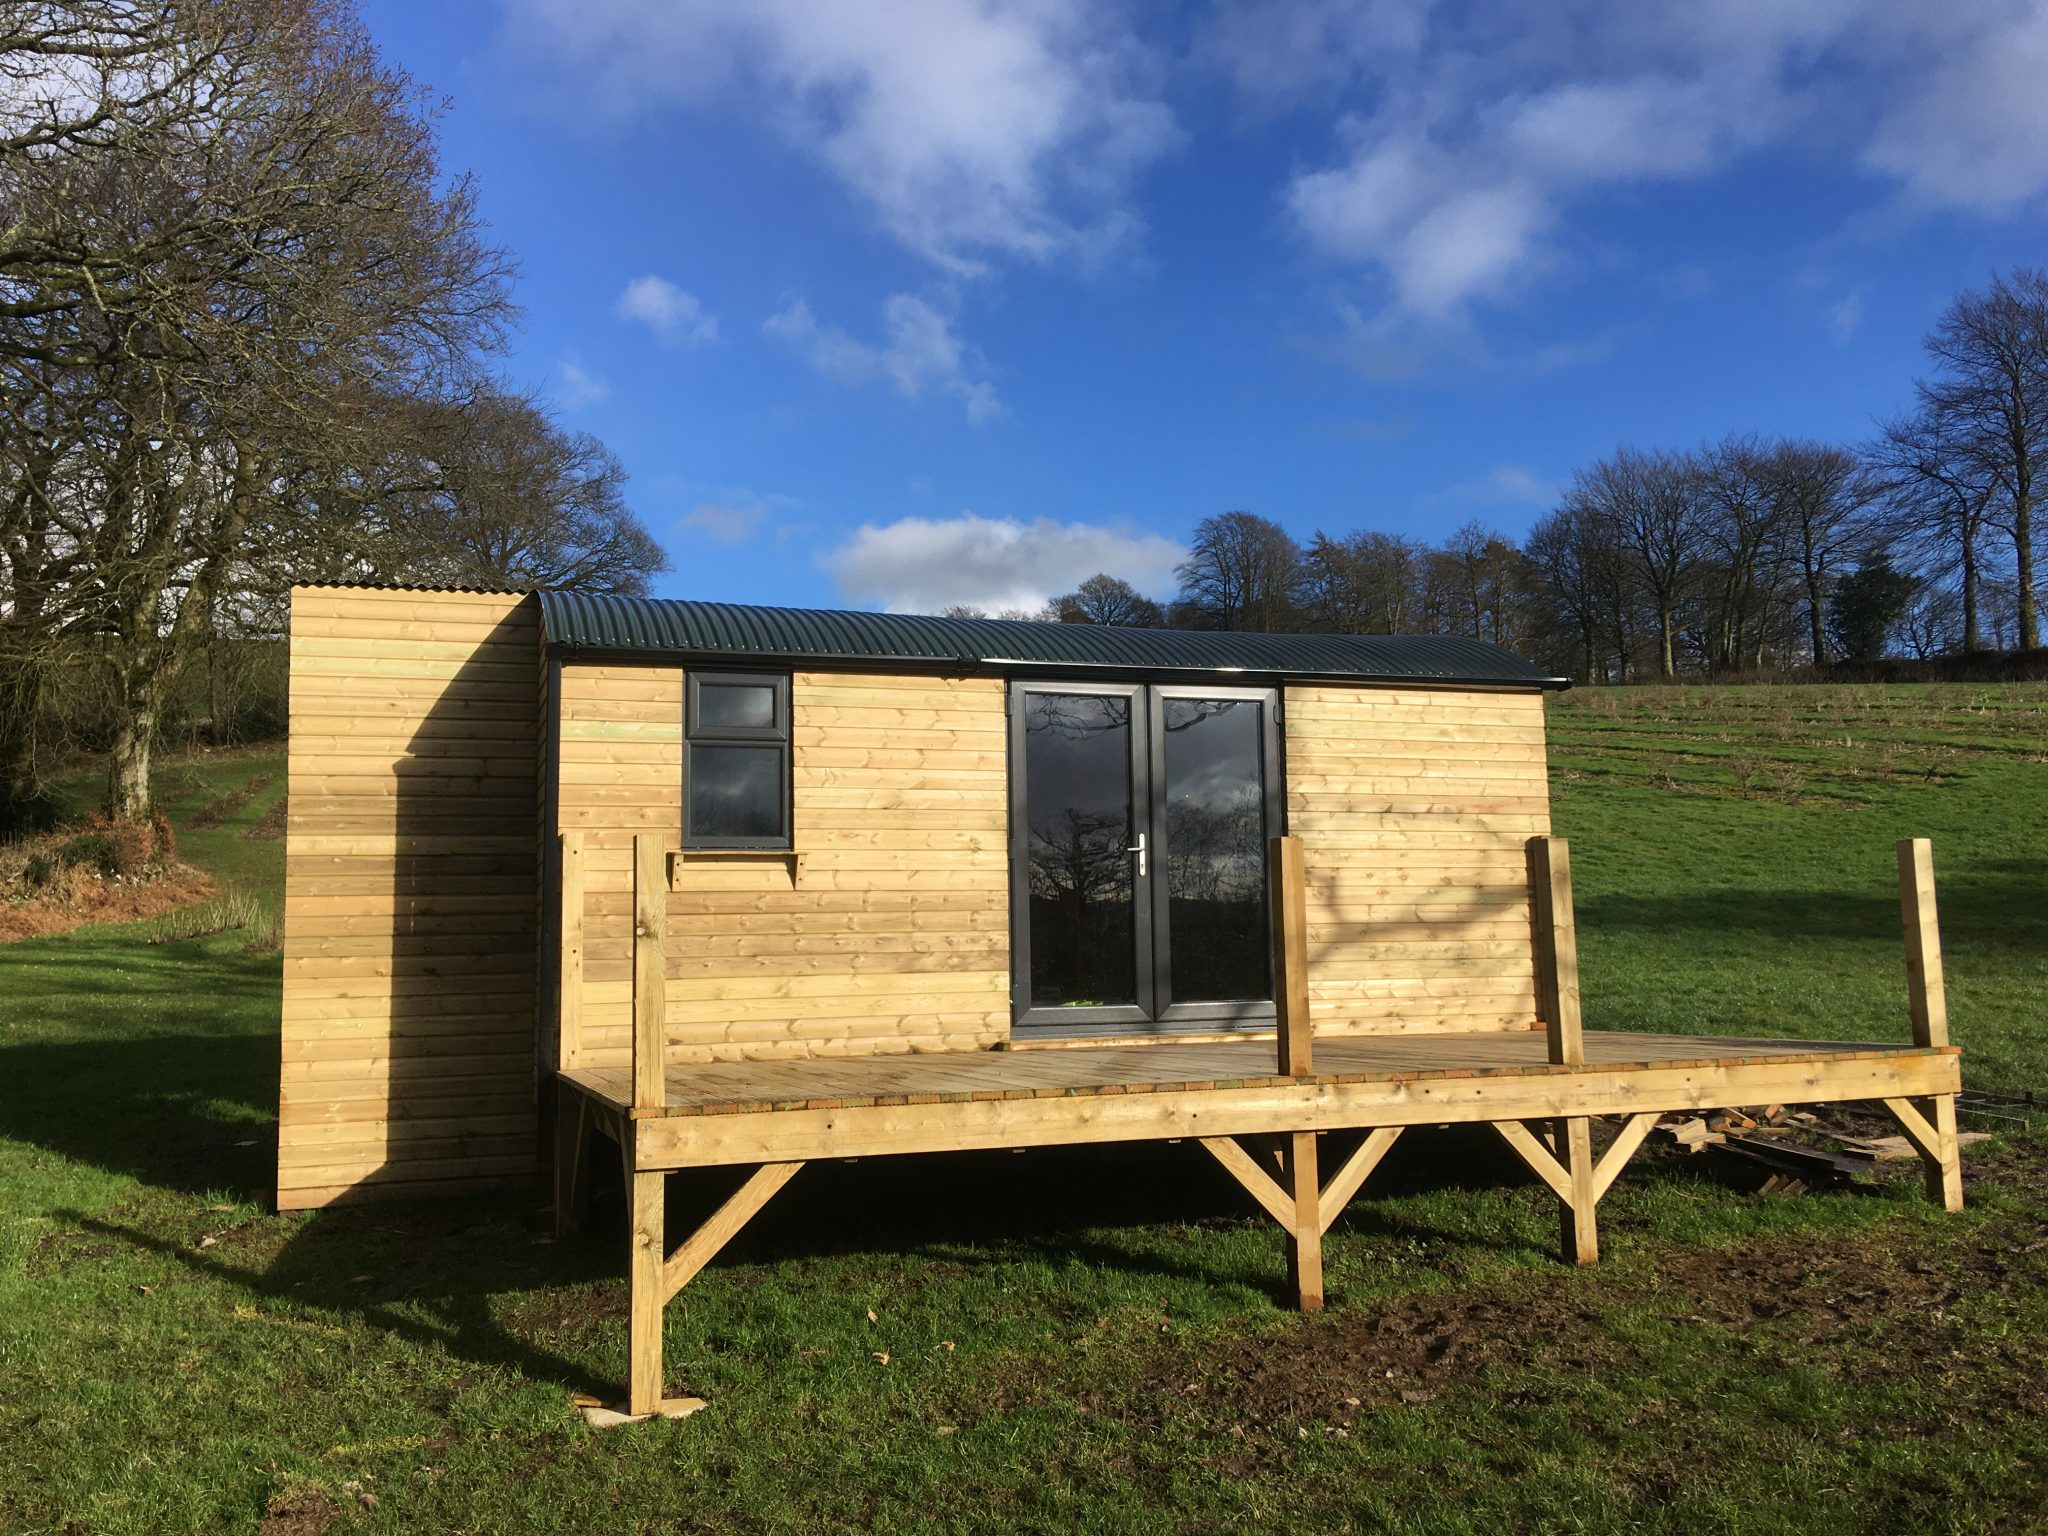 Royal Oak Farm Stargazing Cabin currently being built - bookings available from May 2020